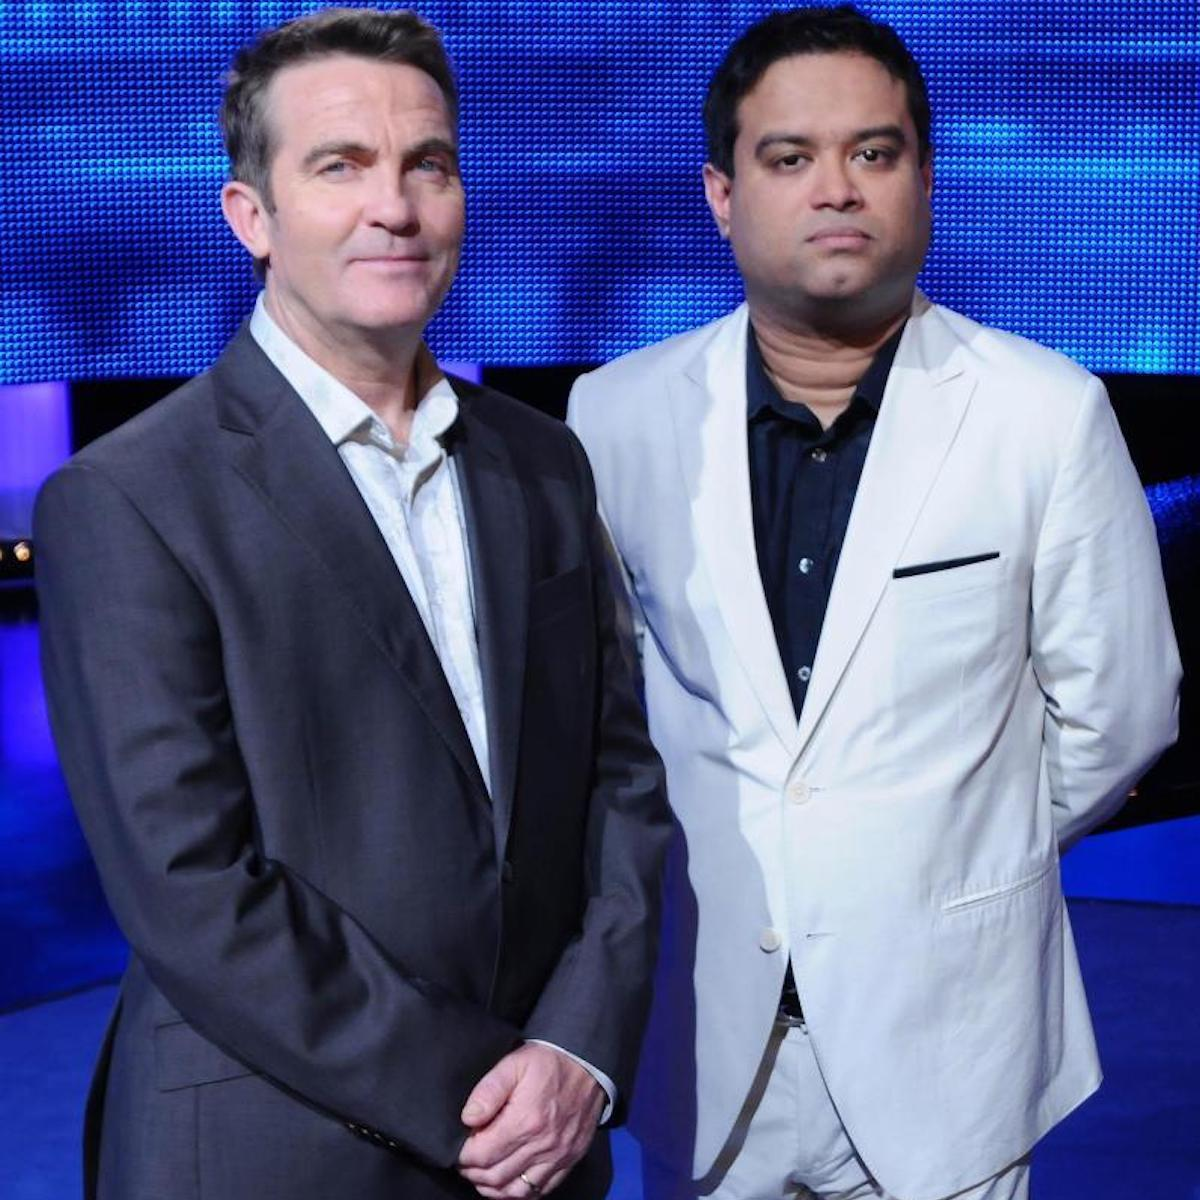 Star of The Chase Paul Sinha reveals he's gay live on air